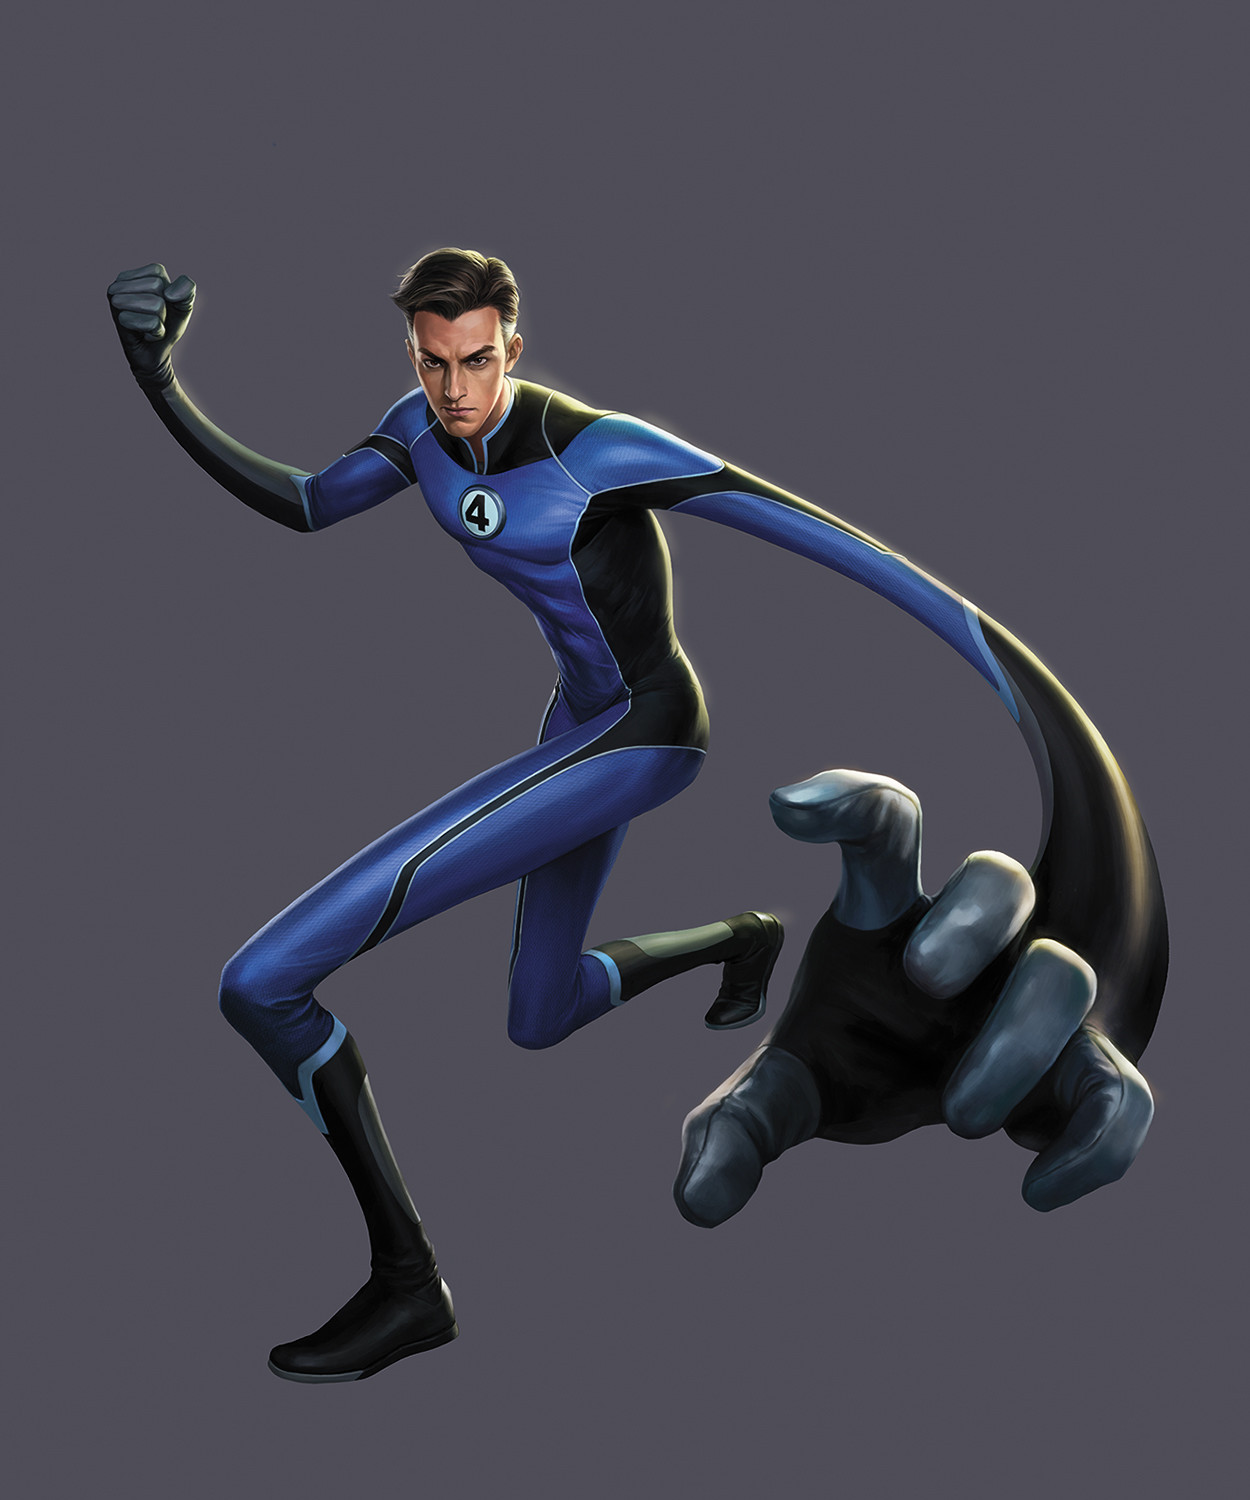 Fantastic4_Mr. Fantastic_By YinYuming.jp